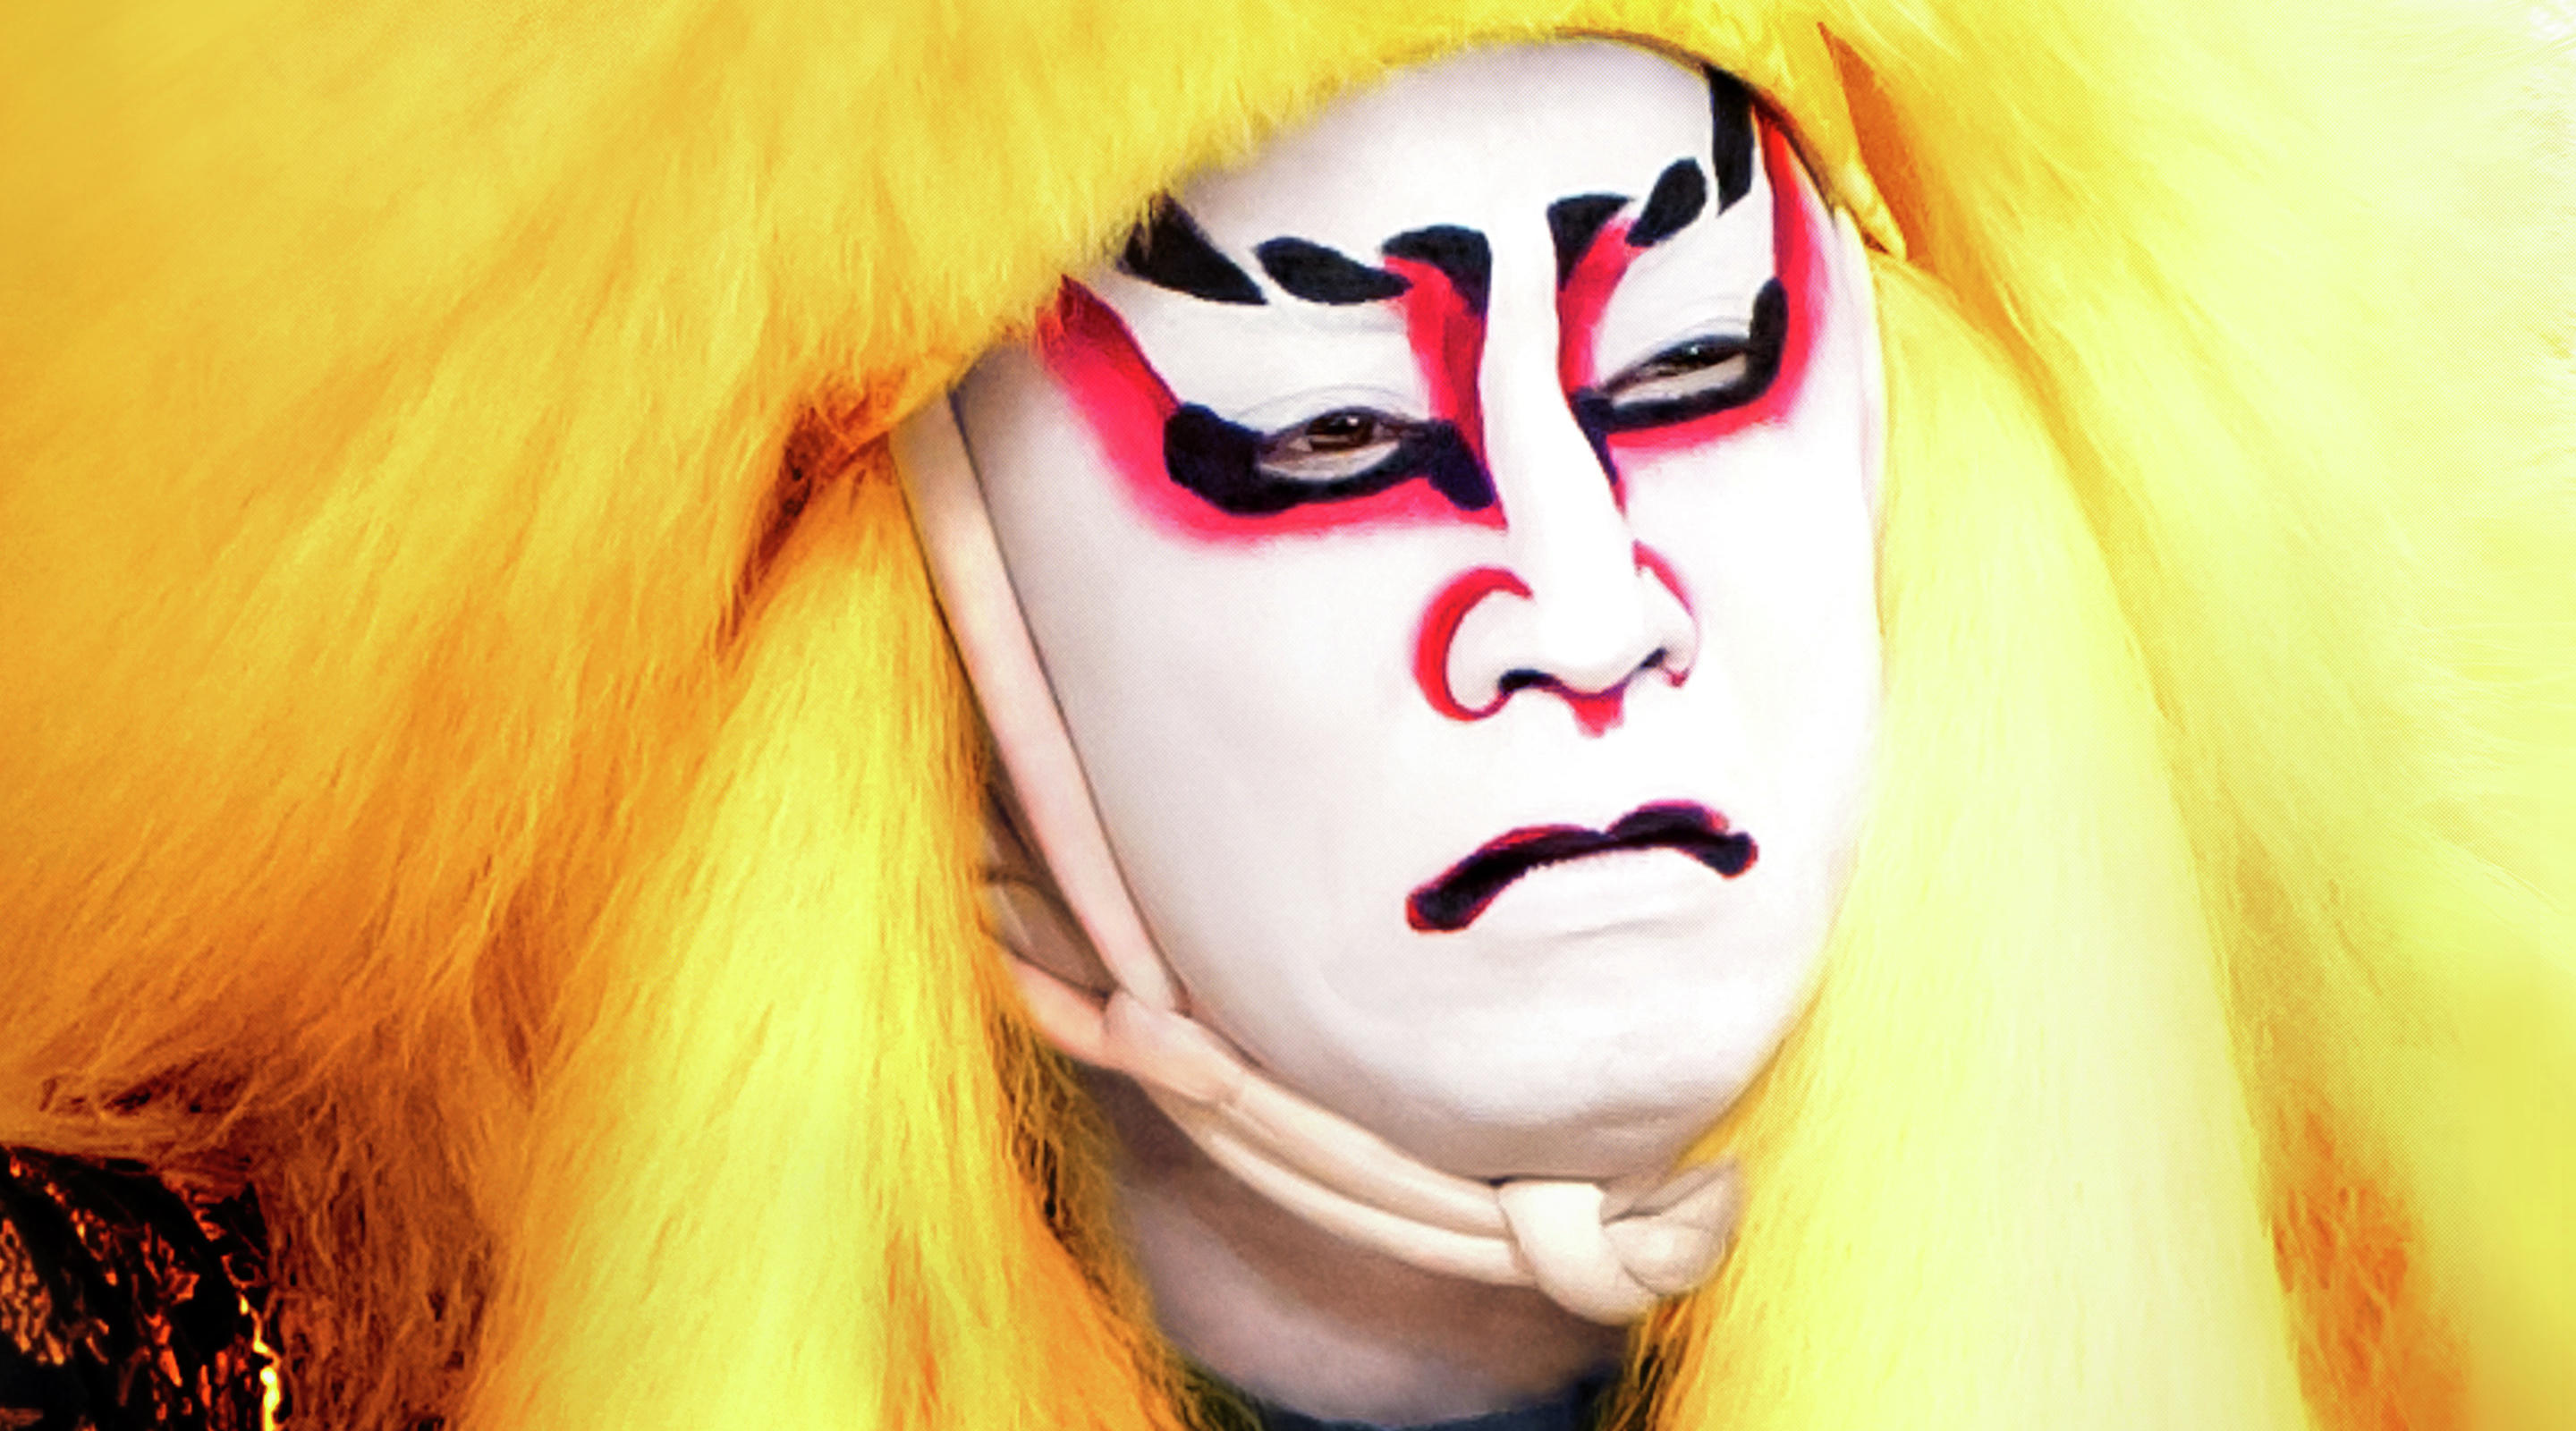 Internationally renowned Kabuki masters will take the stage at MGM Grand, photo courtesy of MGM Grand.